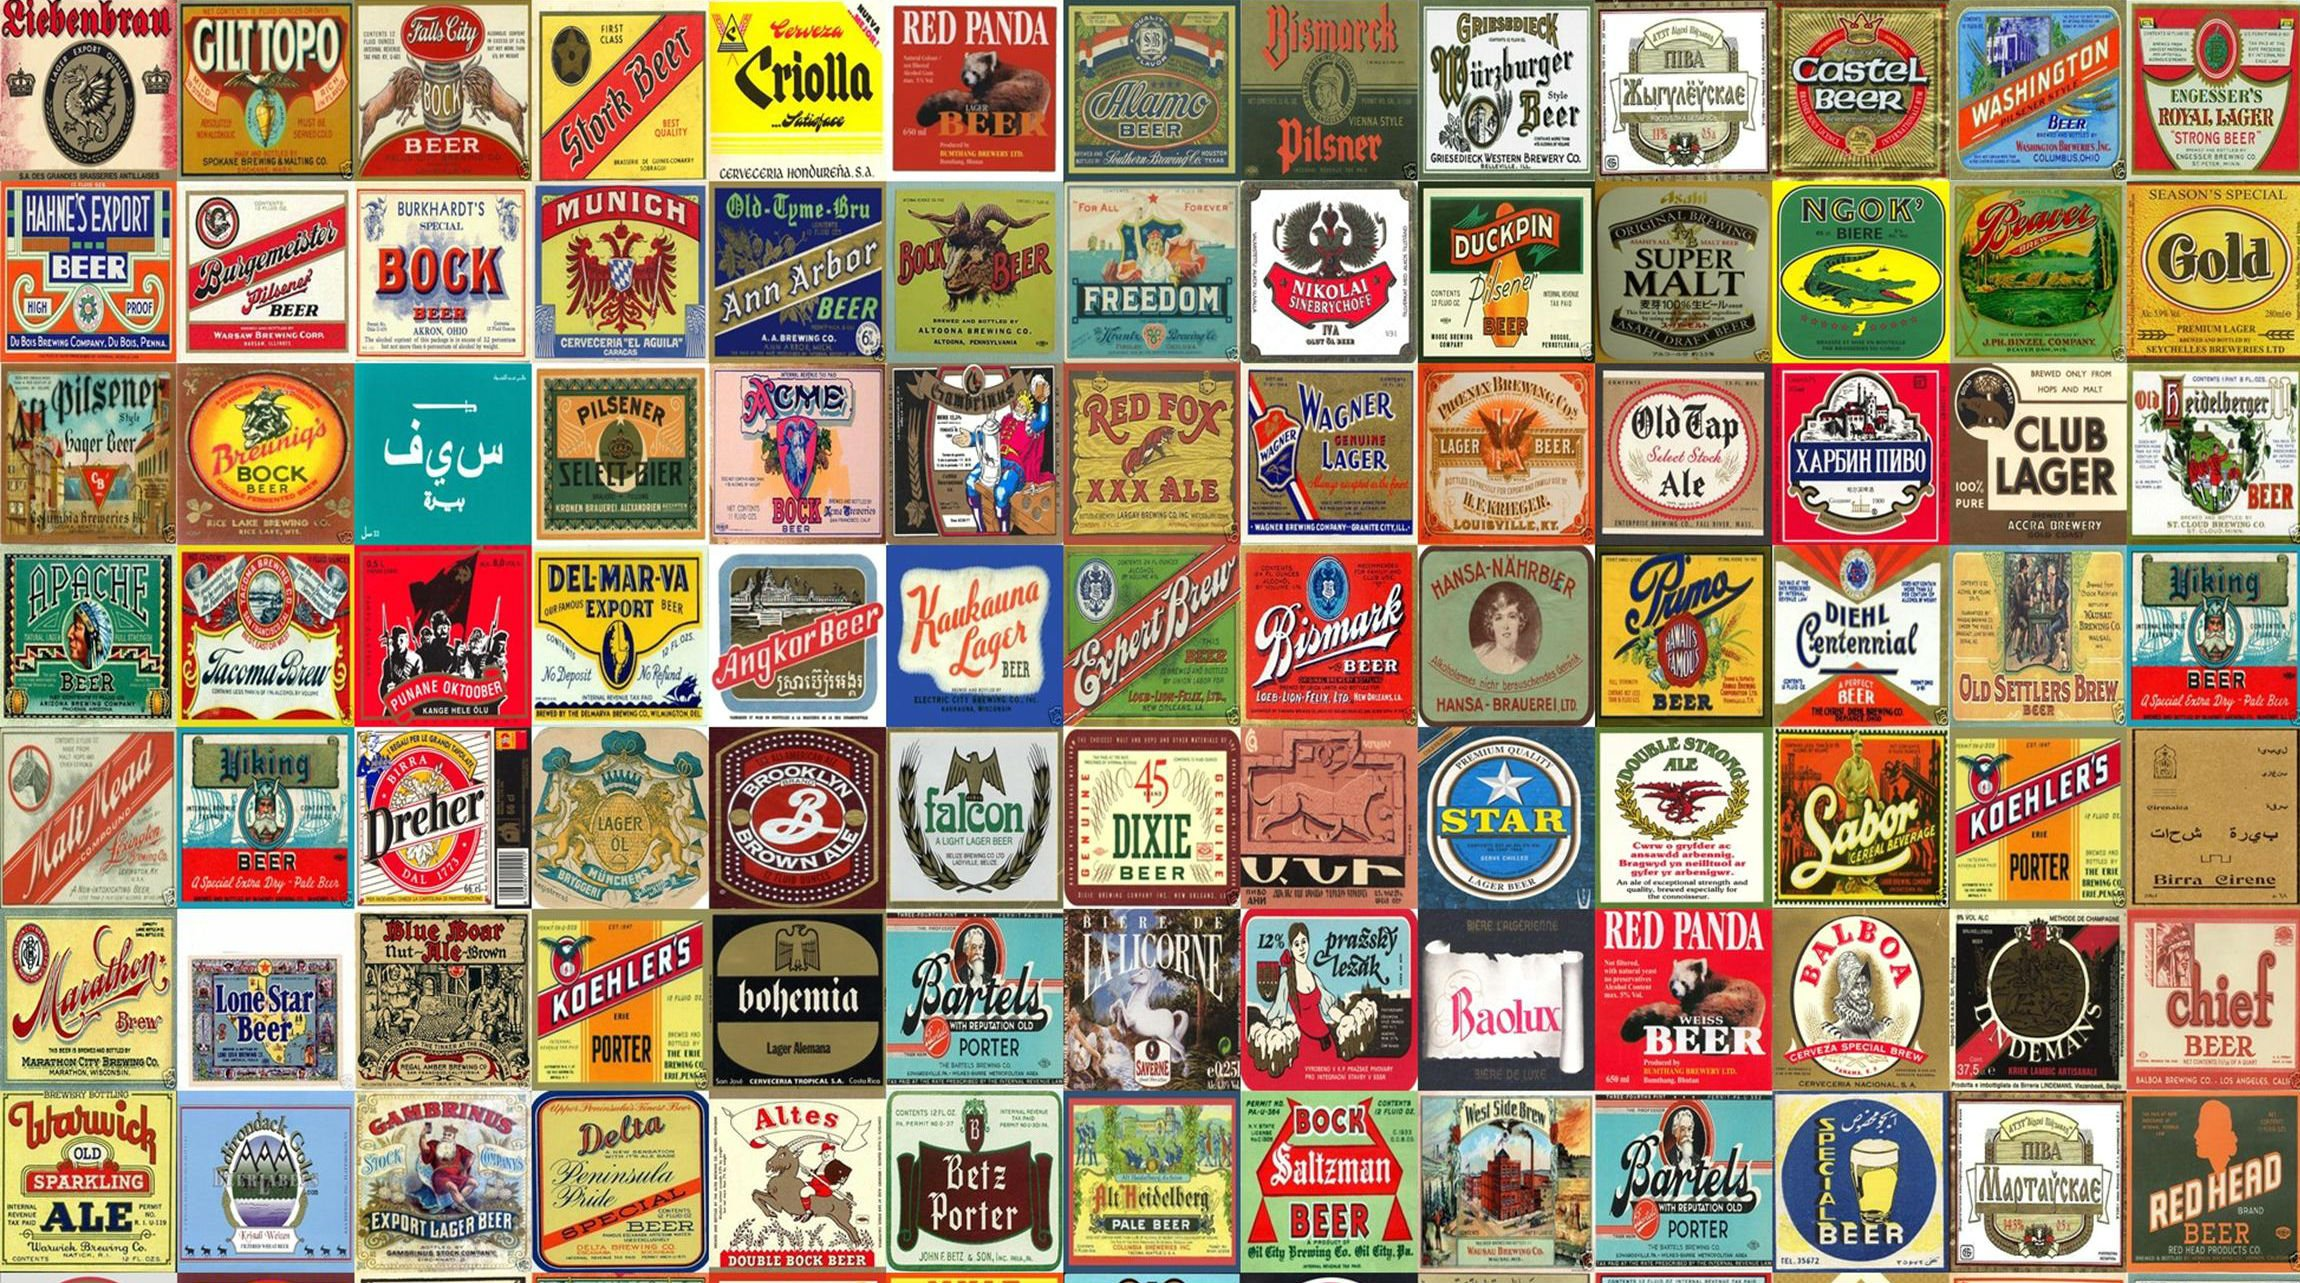 156 also New Holland Beer New Packaging 2016 further Beer alcohol drink poster collage tile tiles also Beer Of The Week in addition 418060777879218036. on craft beer label